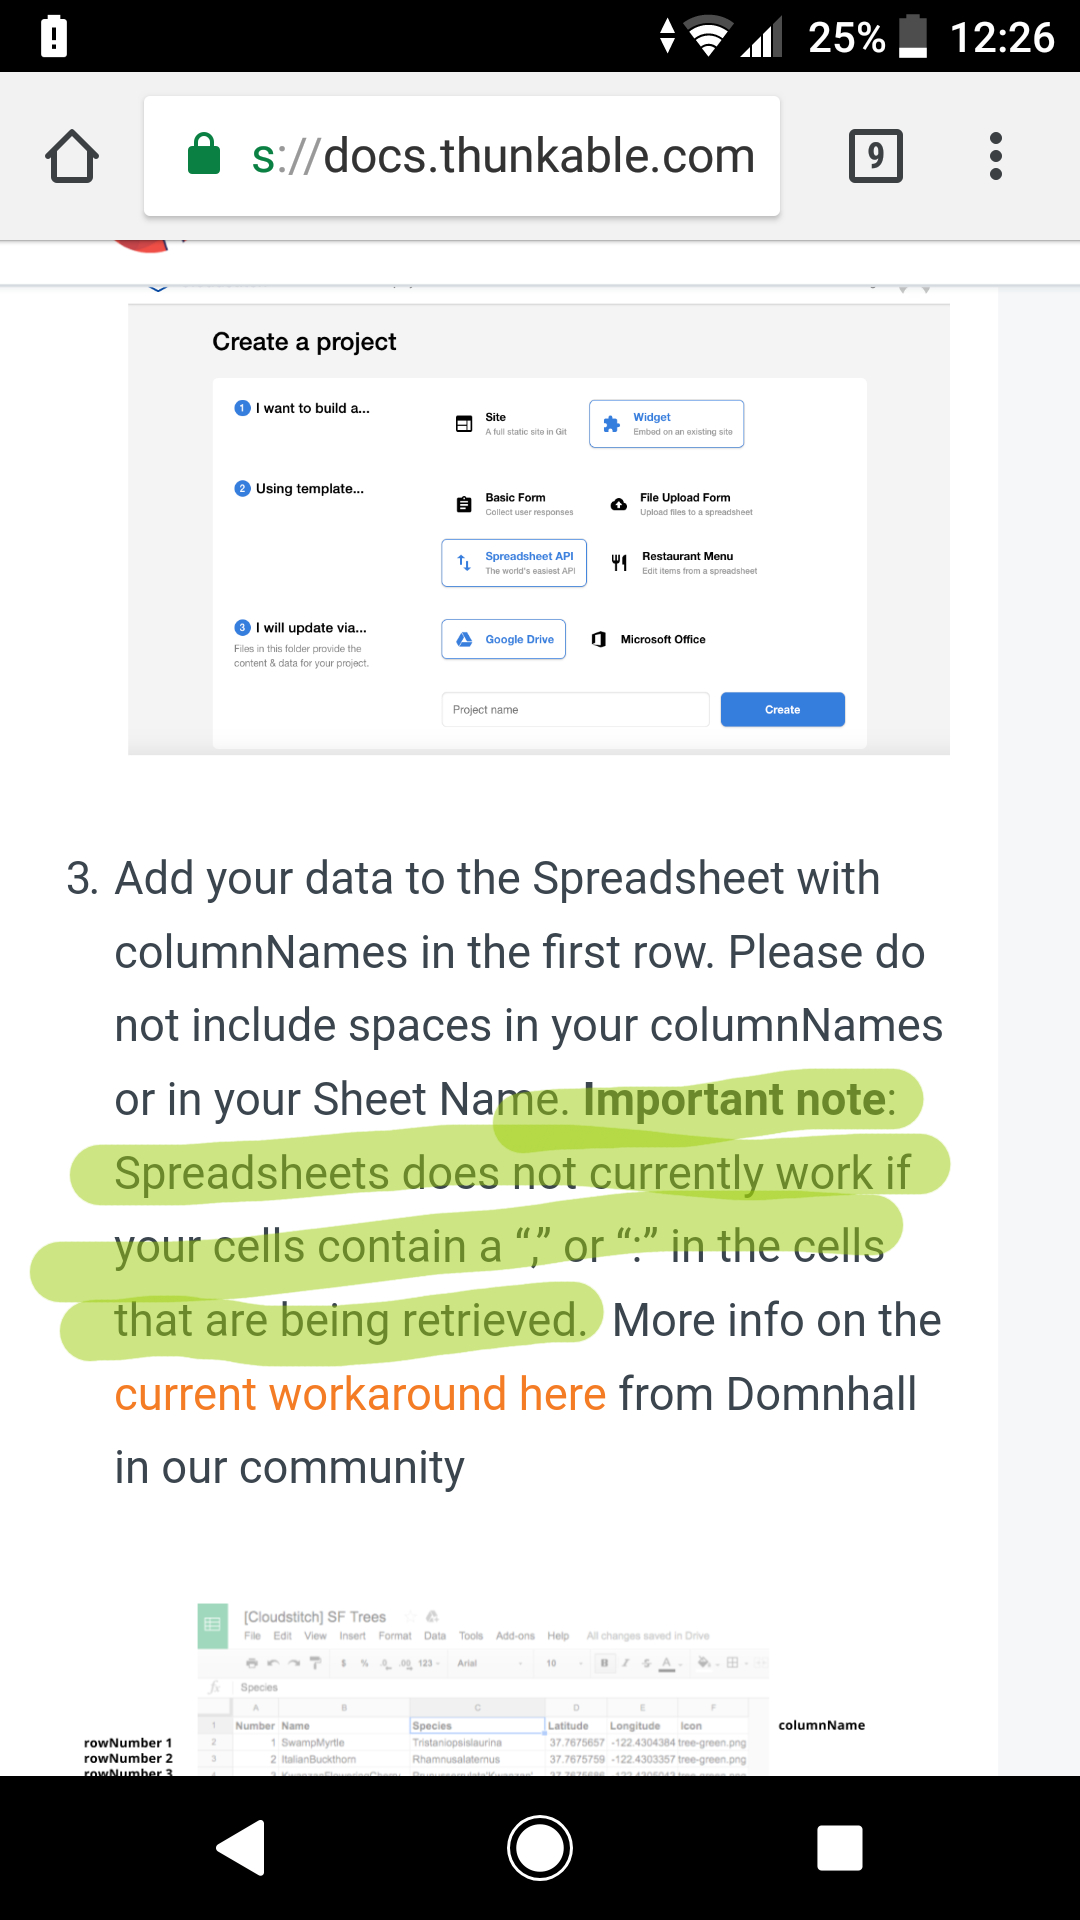 Spreadsheet Quiz Intended For App Crash Having Math Quiz Data In Spreadsheet